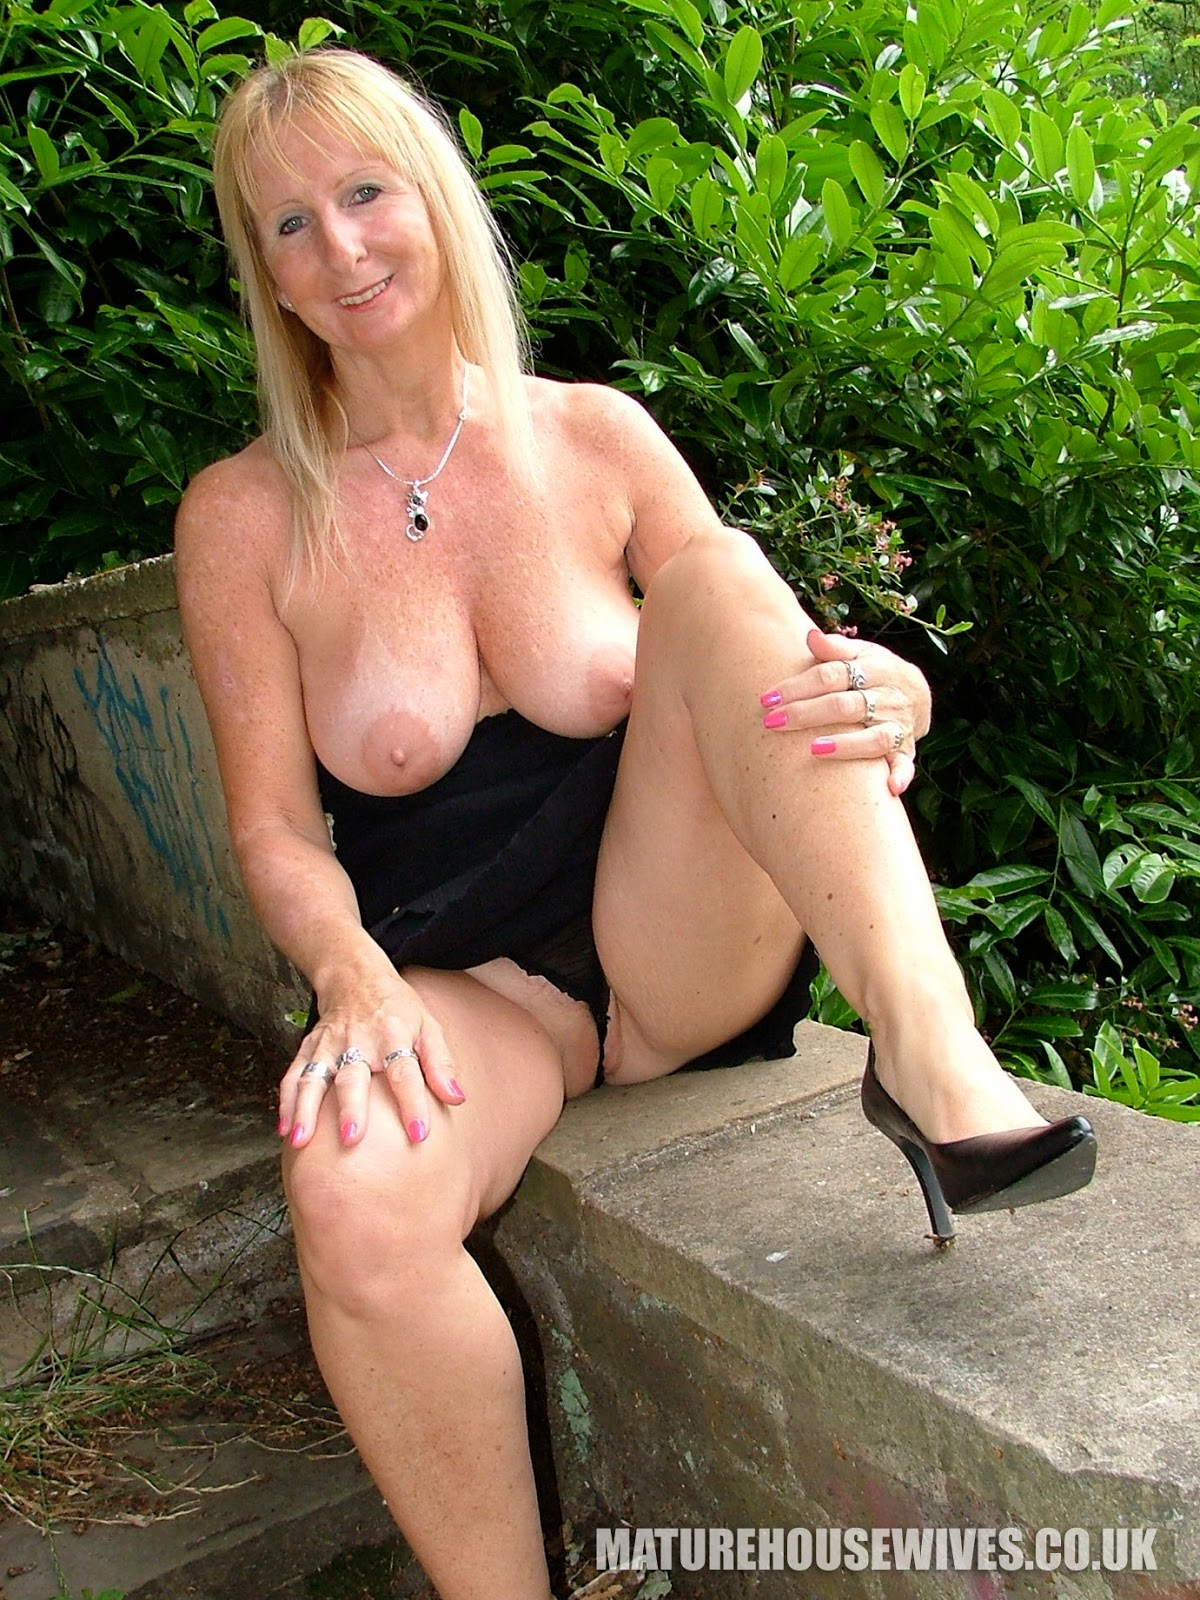 Lady sonia the uk milf bound to table and used till orgasm - 5 9